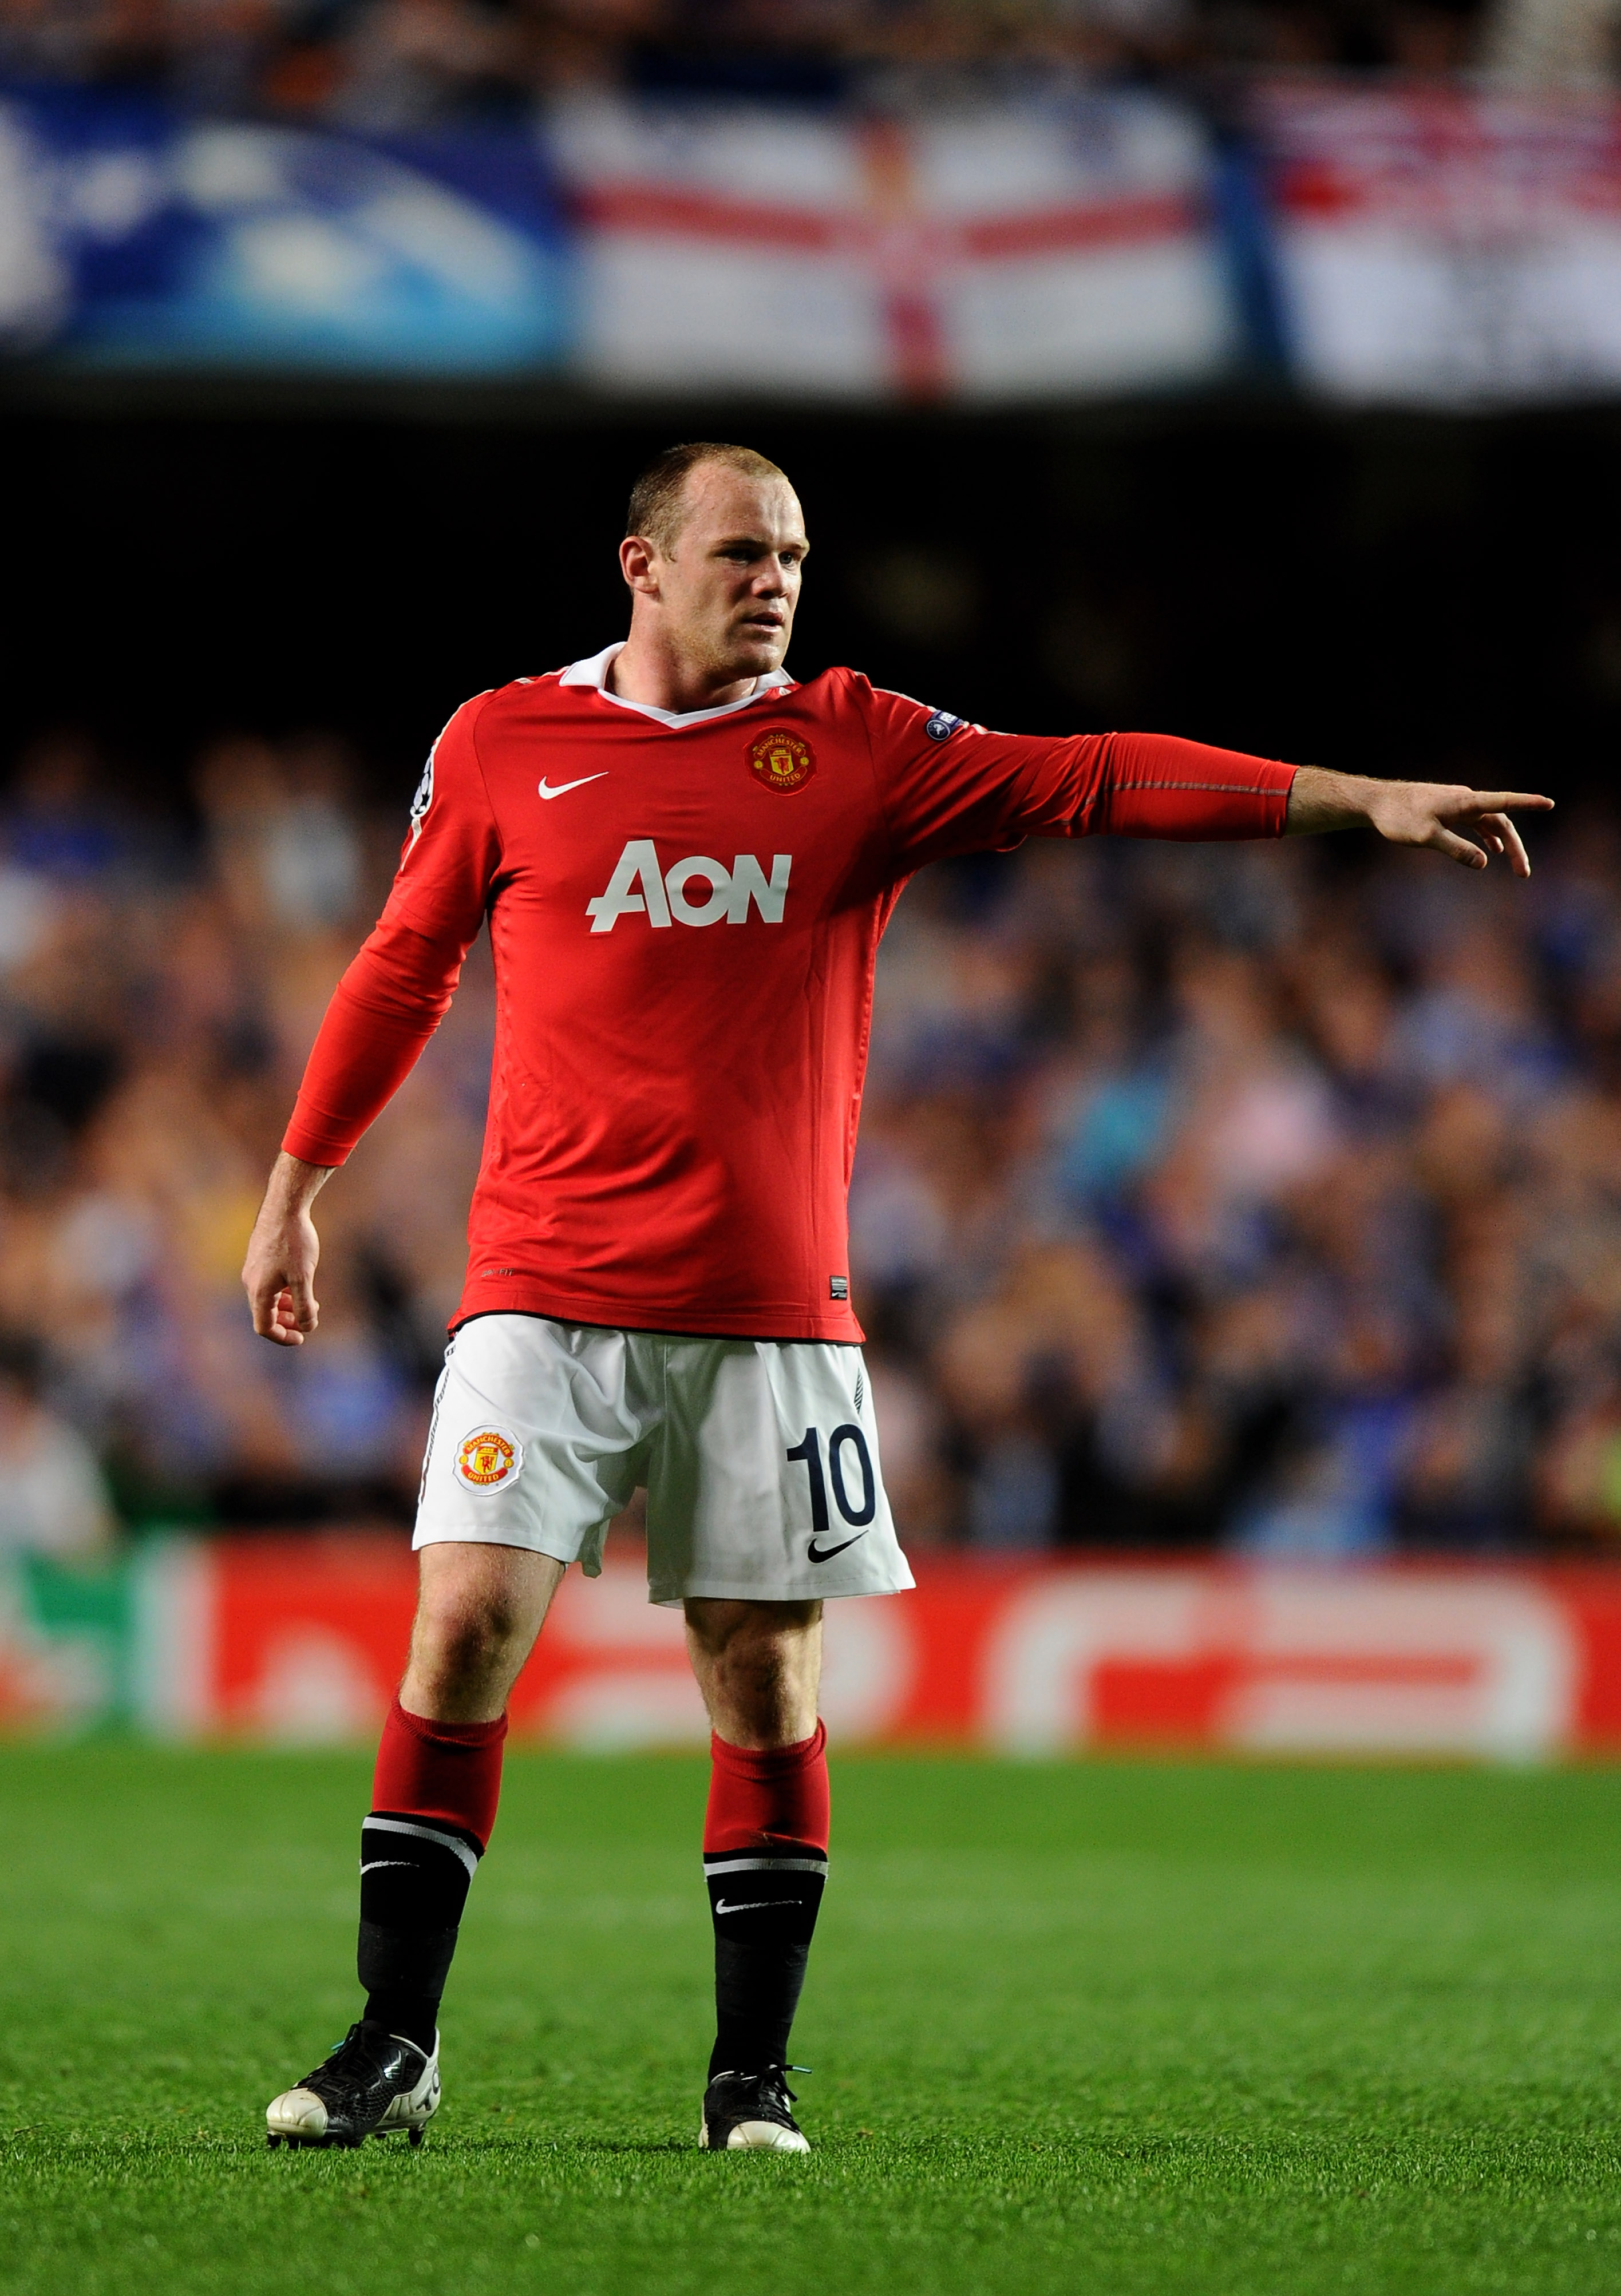 LONDON, ENGLAND - APRIL 06:  Wayne Rooney of Manchester United gestures during the UEFA Champions League quarter final first leg match between Chelsea and Manchester United at Stamford Bridge on April 6, 2011 in London, England.  (Photo by Mike Hewitt/Get